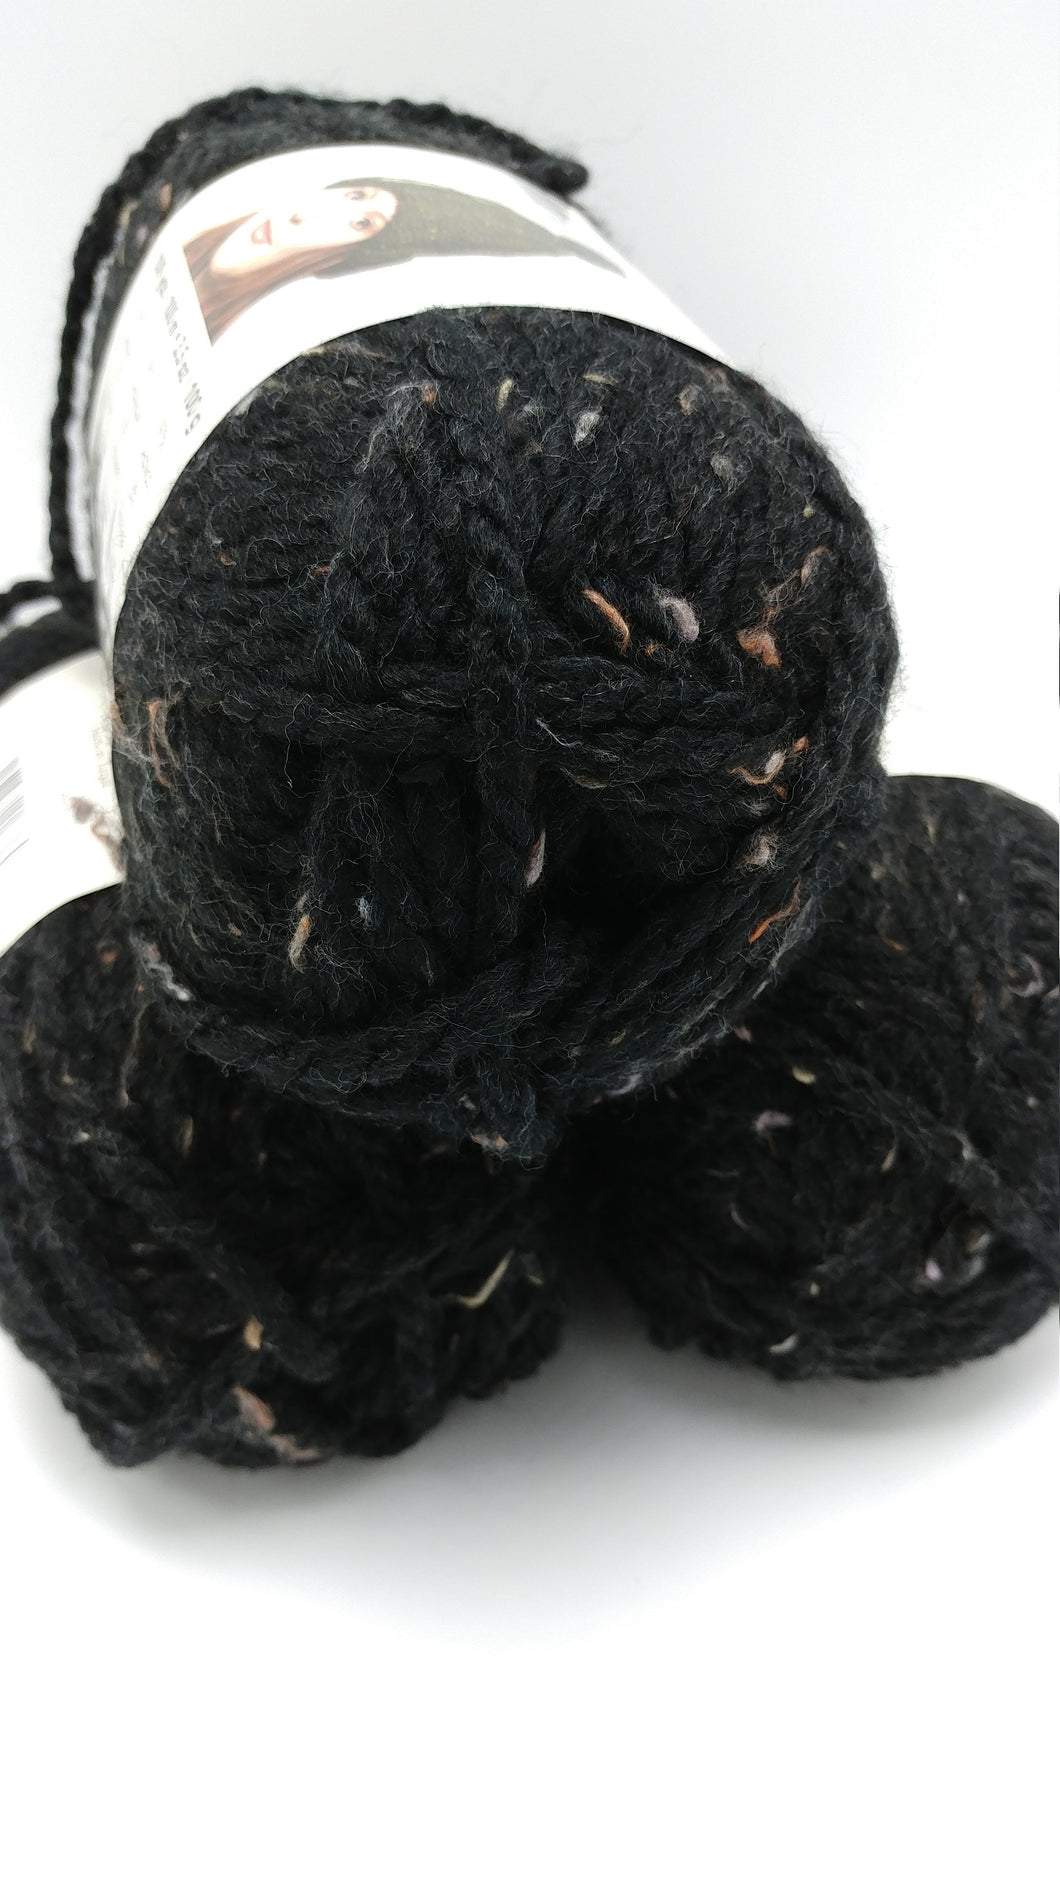 CARBON Black Serenity Chunky Tweed by Premier Yarns - #5 Bulky - 3.5oz/100g  109yds/100m - 97/3% Acrylic / Viscose - Makes Great Sweaters